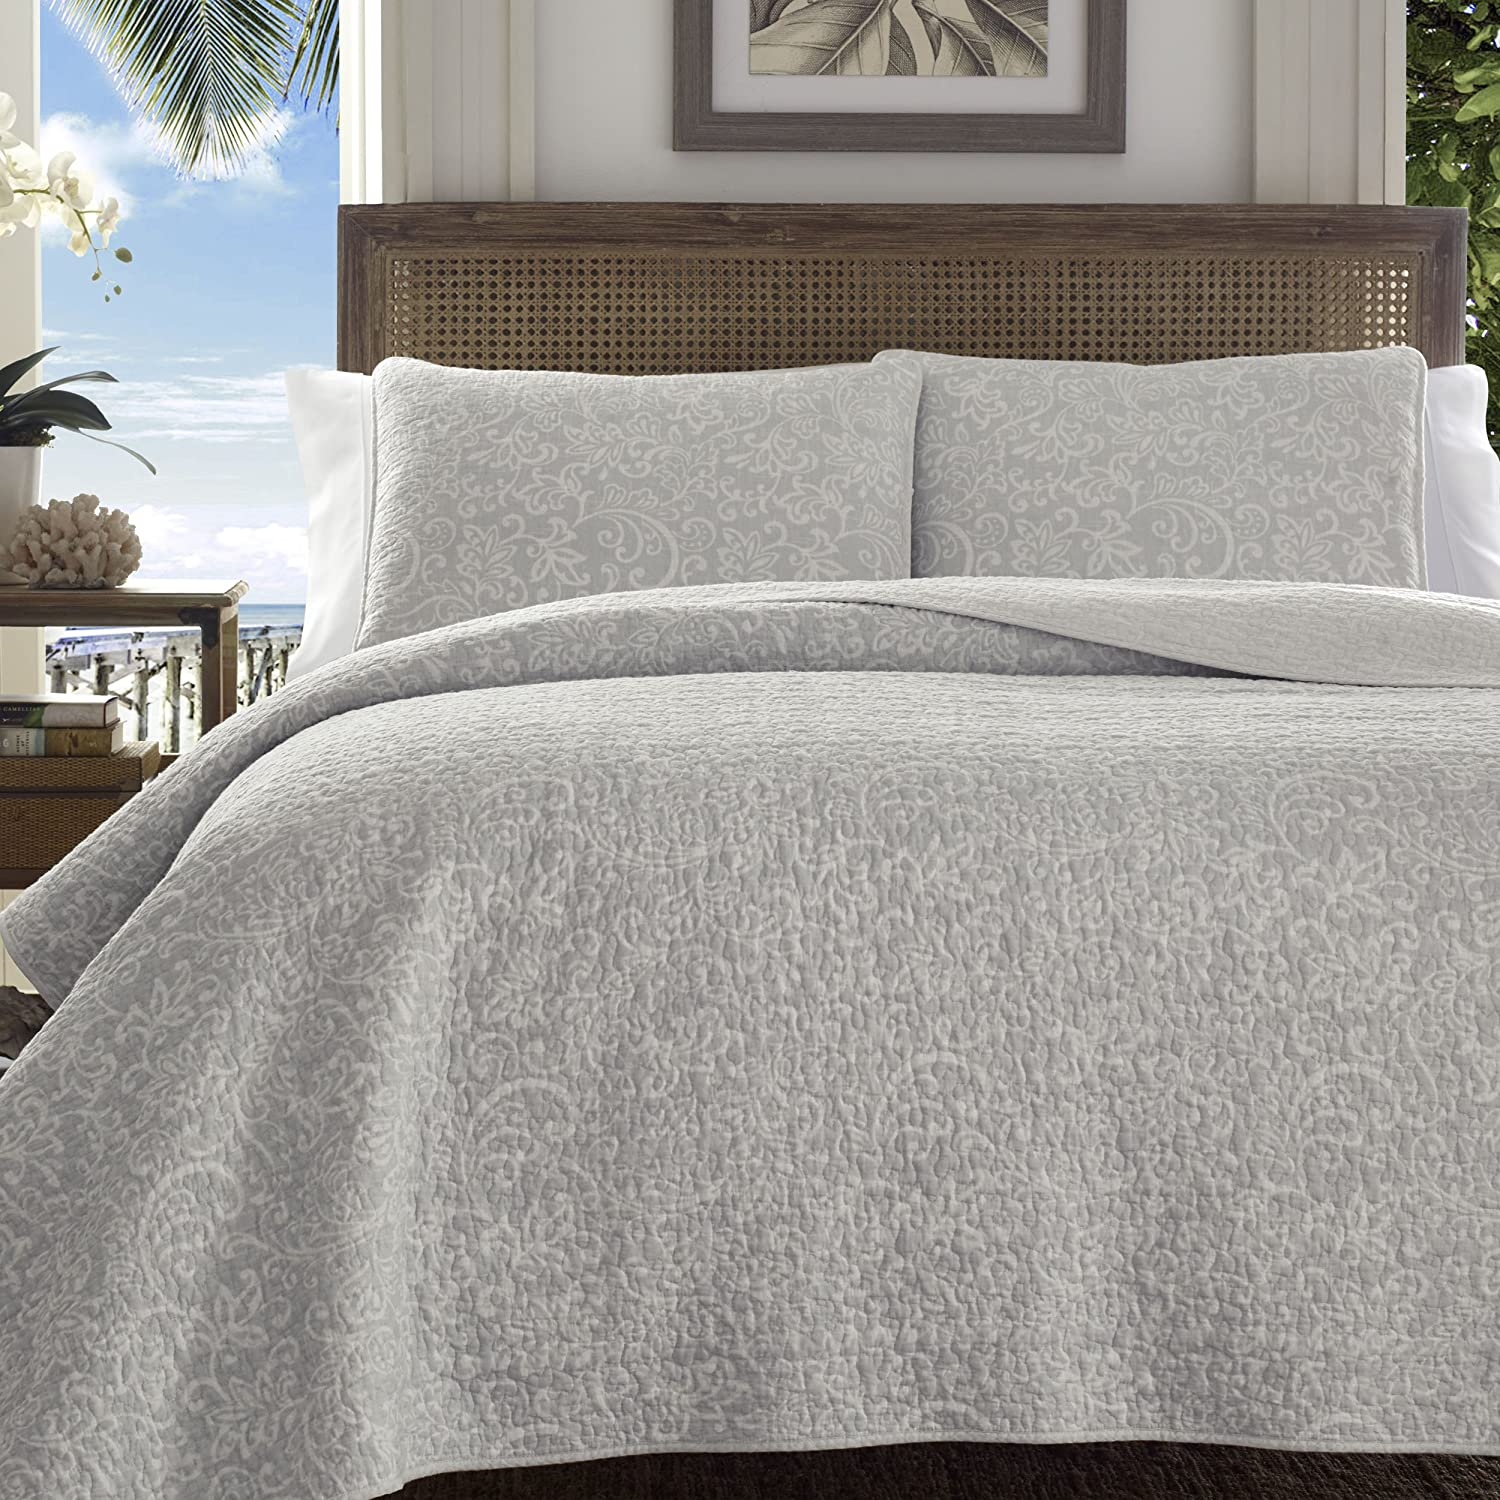 Amazon Com Tommy Bahama 220114 Gravel Gulch Rev Ersible Quilt Set Grey Yellow King Home Kitchen